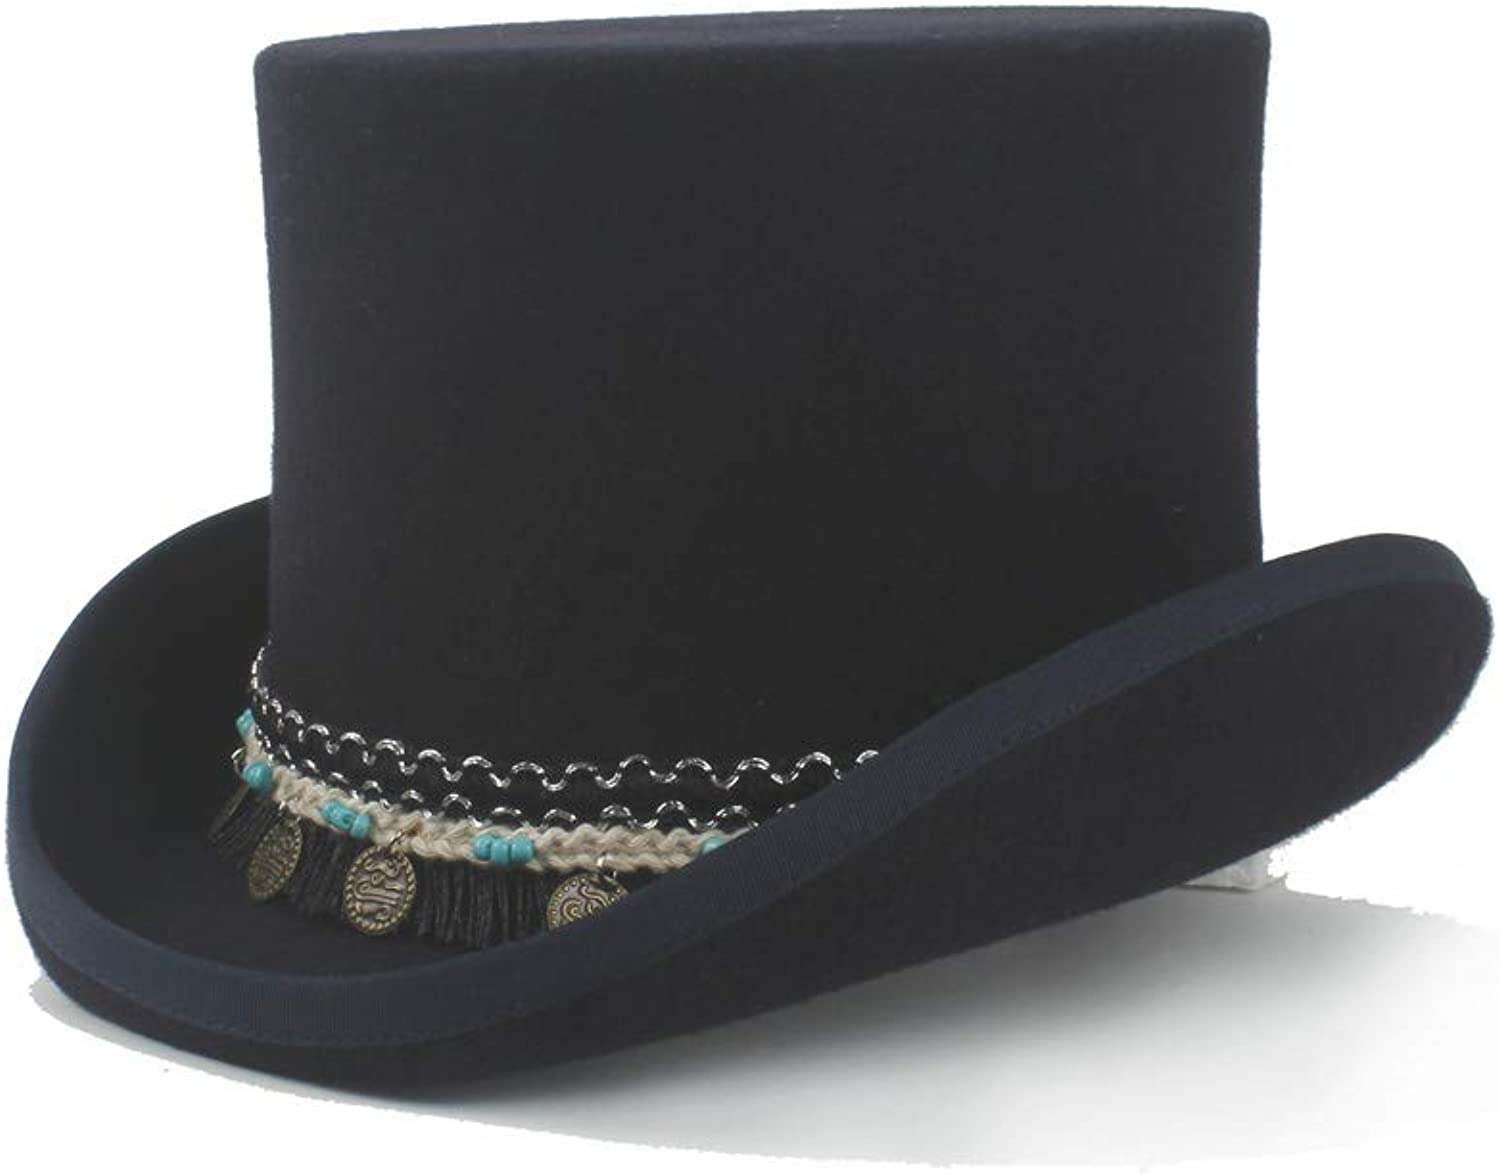 HHF Caps & Hats Steampunk Magician Hat Women Men Steampunk Top Hat 100% Wool Crazy Hat Braided Tassel Round Pendant Traditional Flat Top Hat President Hat (color   Black, Size   61cm)